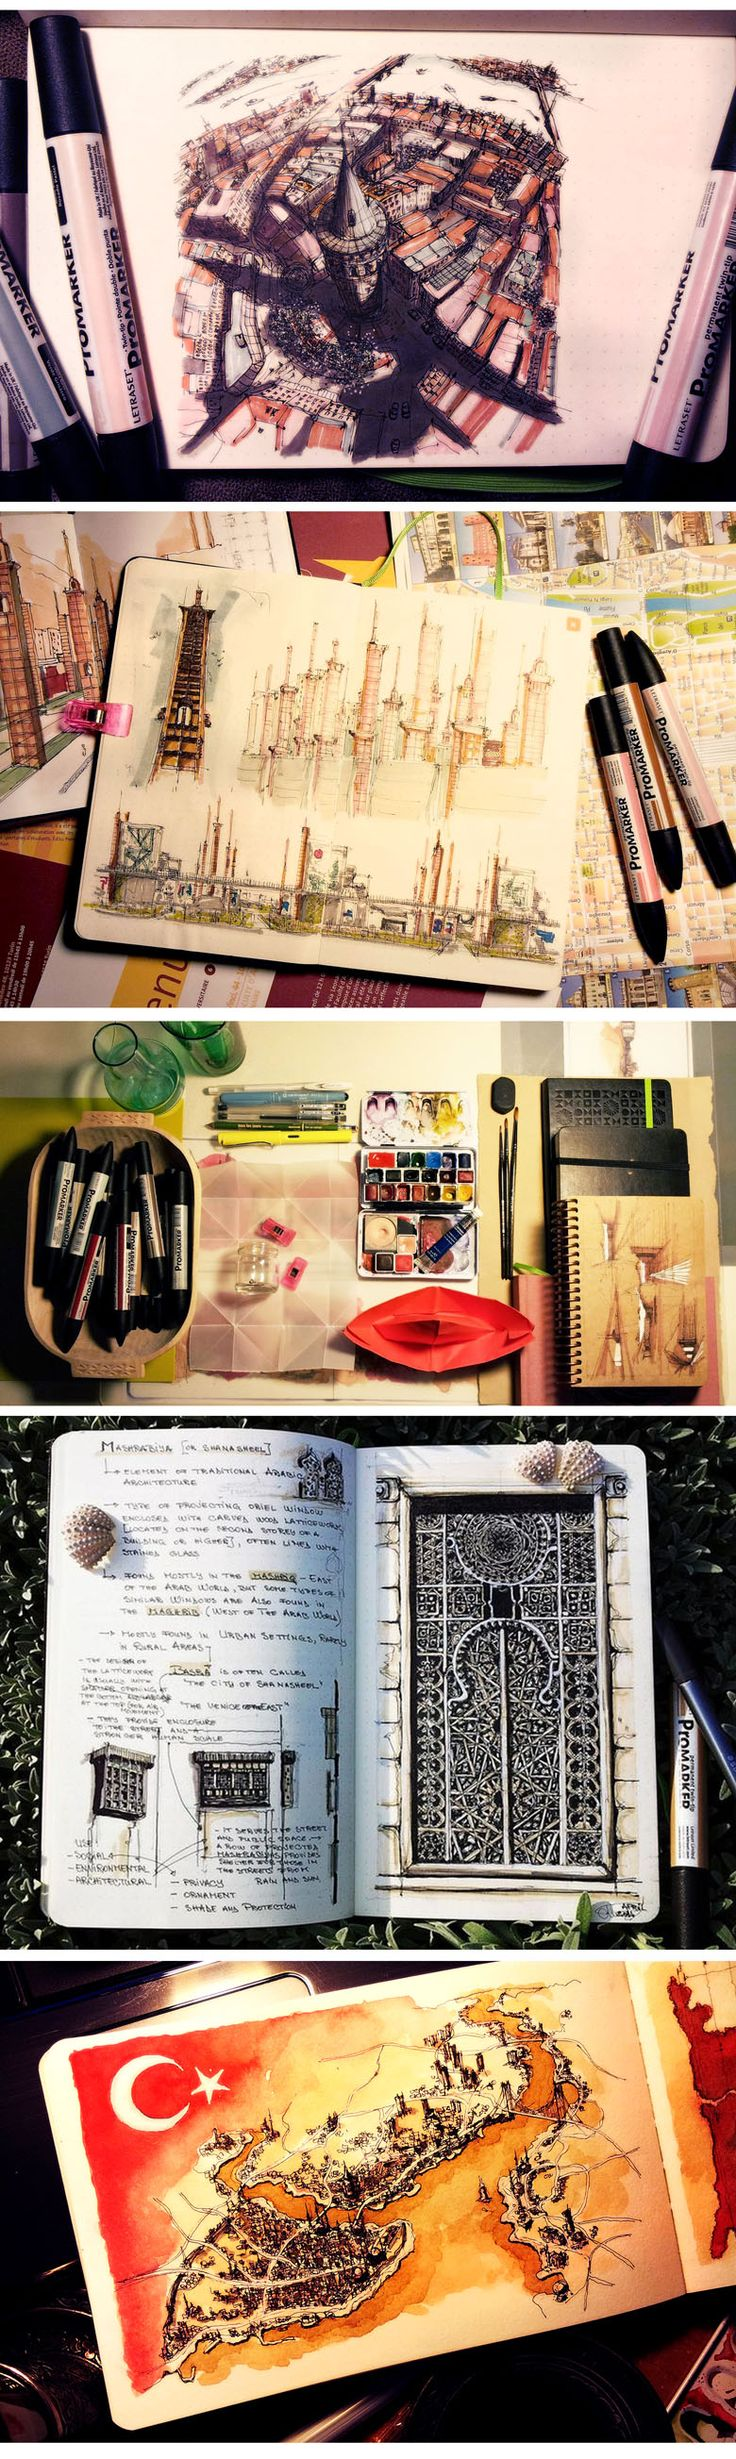 Loredana Micu #journal || Seriously who the hell has time to keep this kind of a journal/sketchbook???